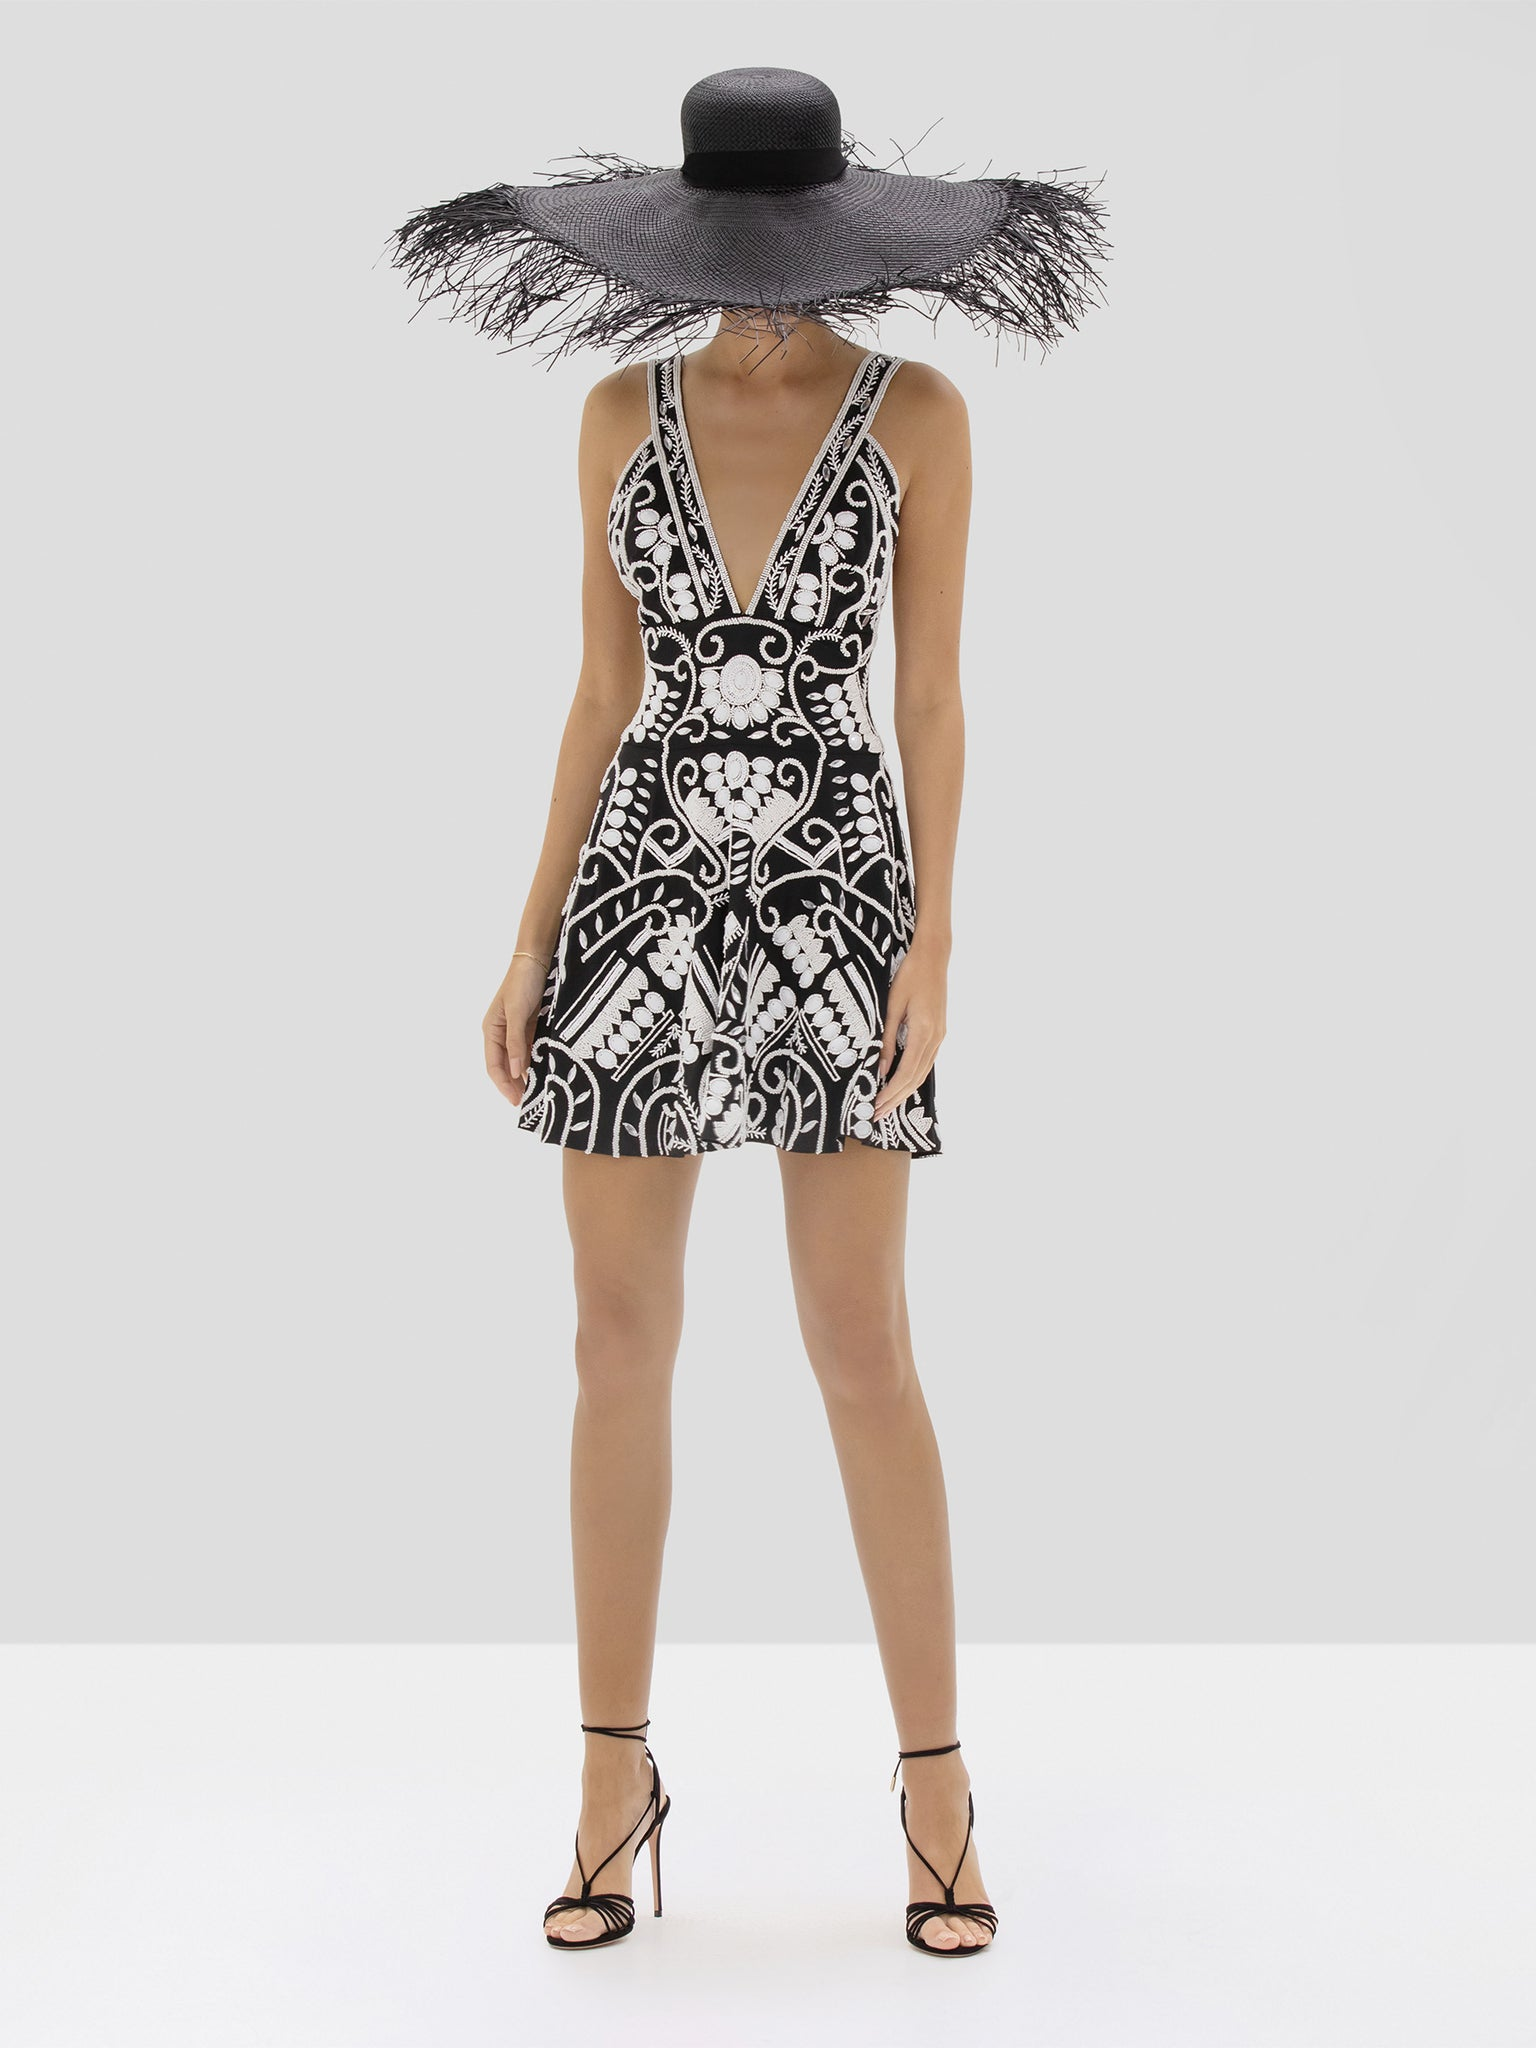 Alexis Jerza Dress in Black and White Embroidery from the Spring Summer 2020 Collection